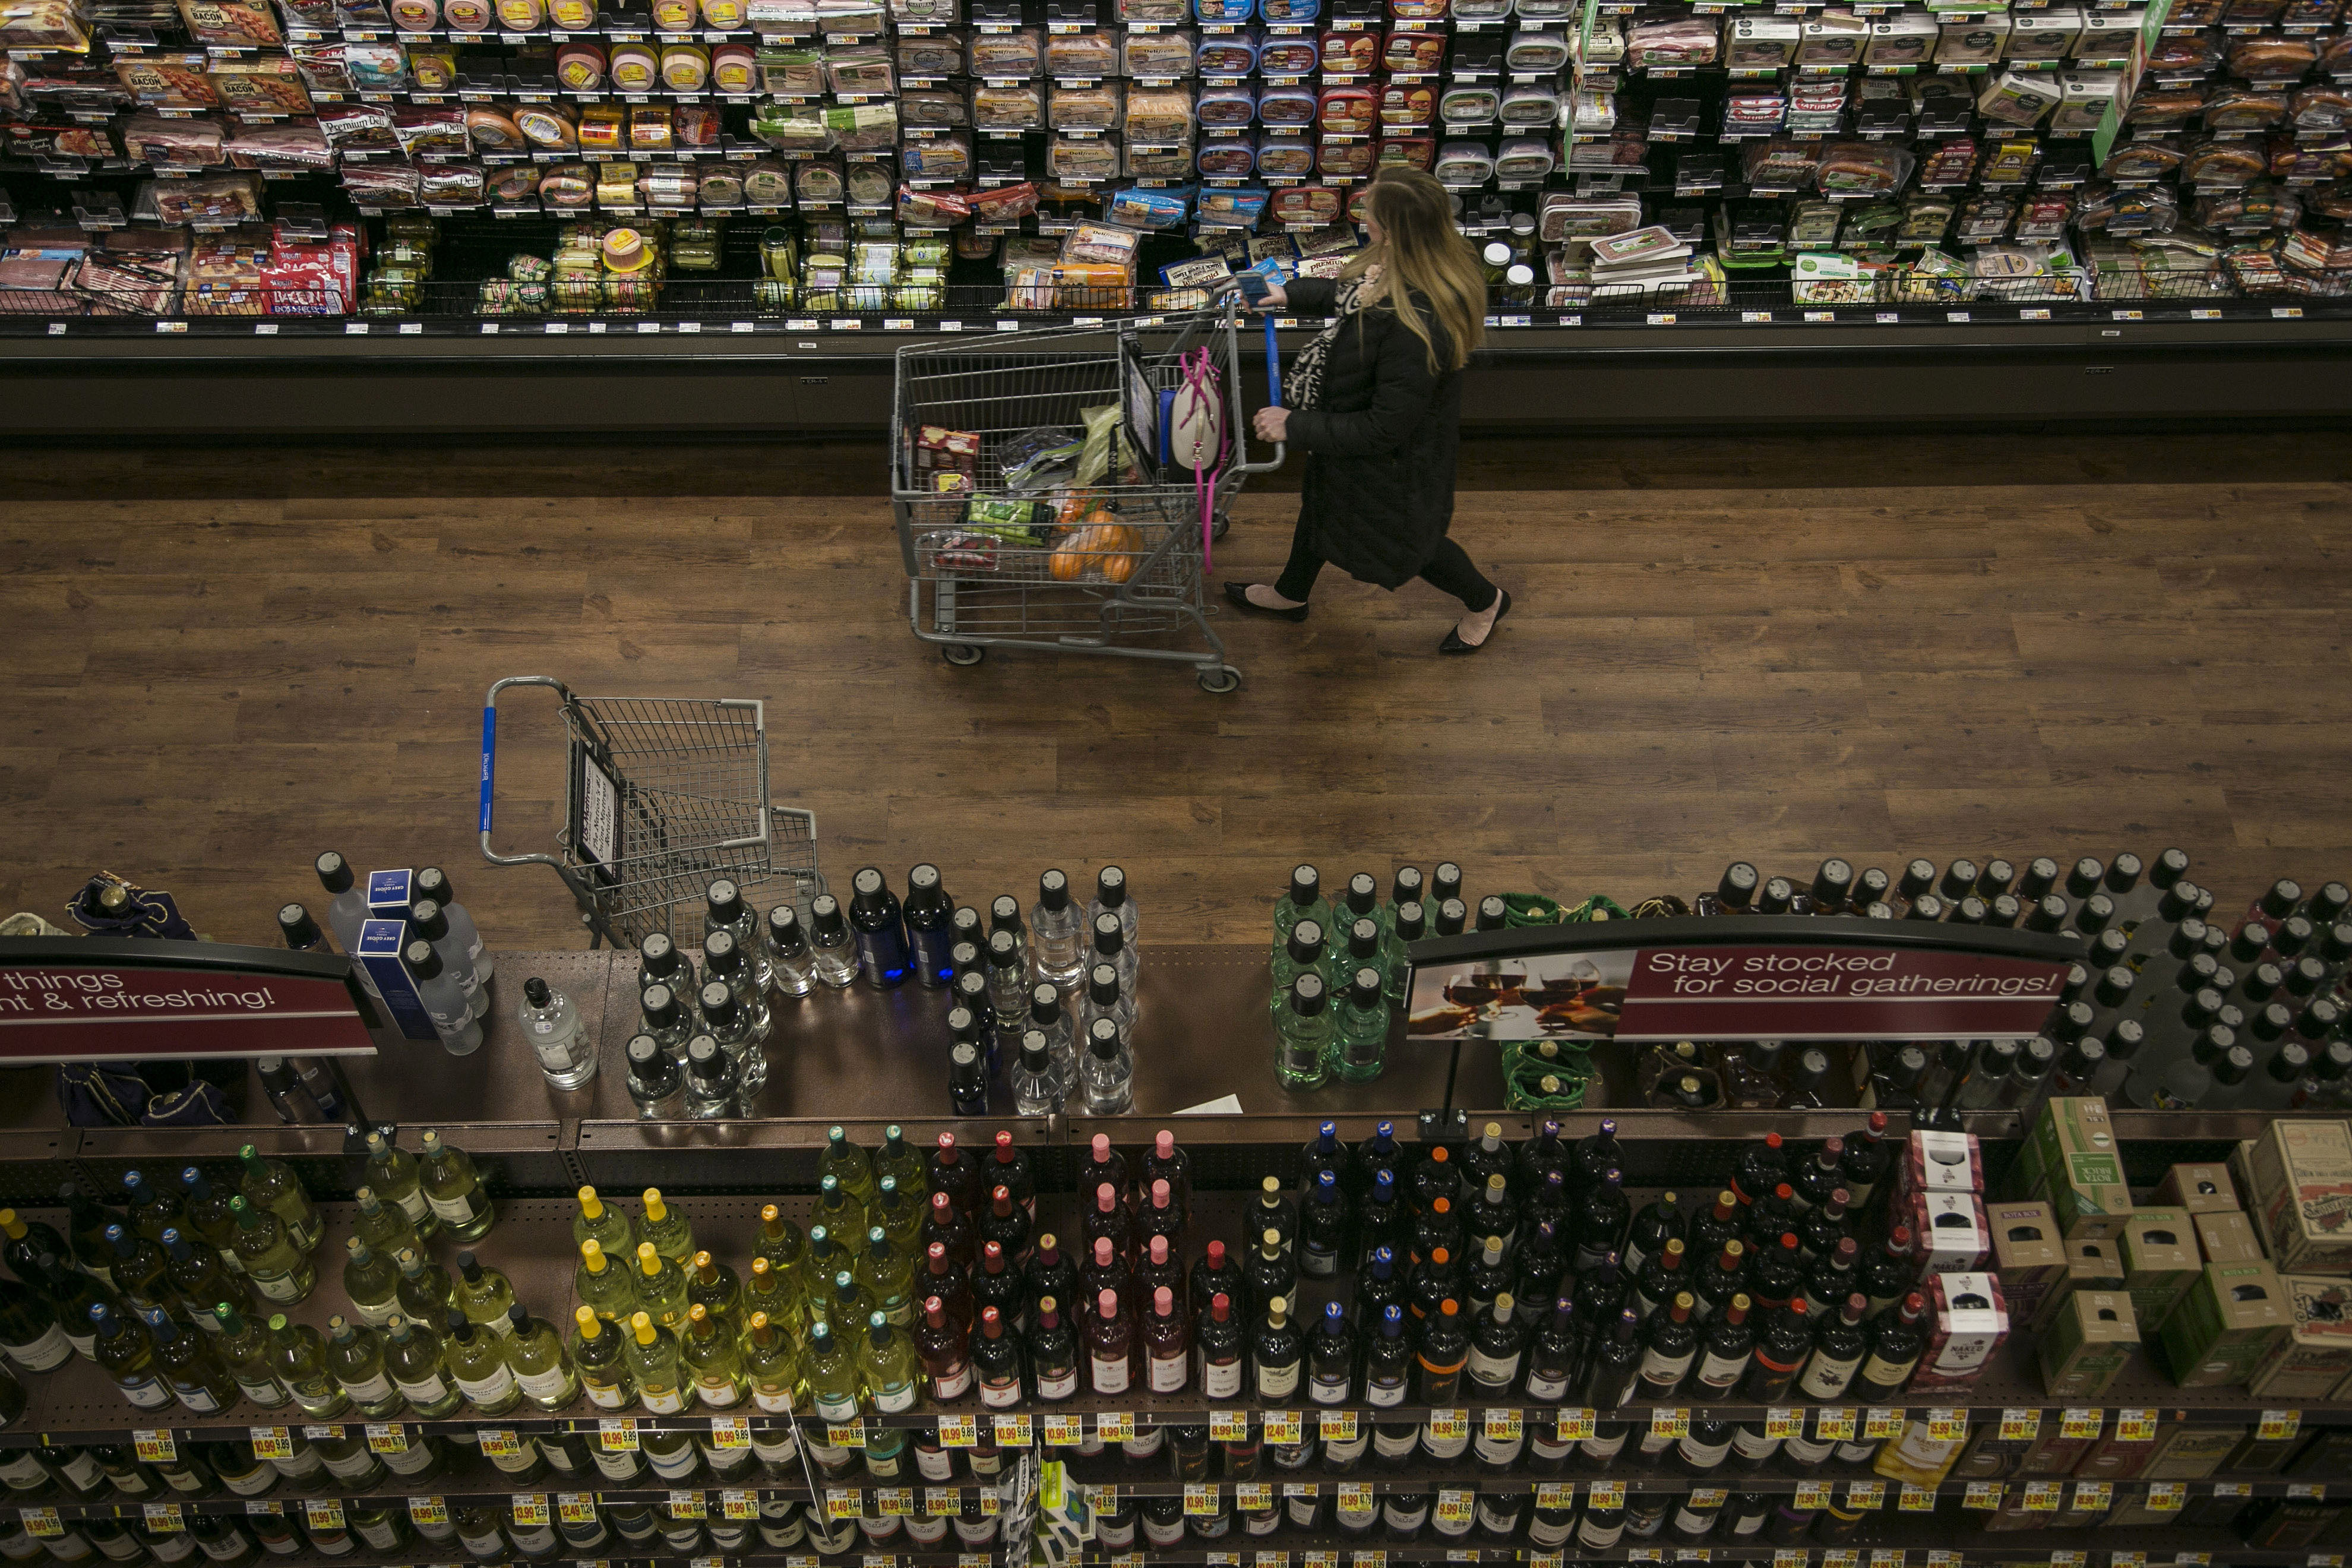 A woman shops at a Kroger grocery store in Birmingham, Michigan, on March 1, 2016. (MUST CREDIT: Bloomberg photo by Sean Proctor)